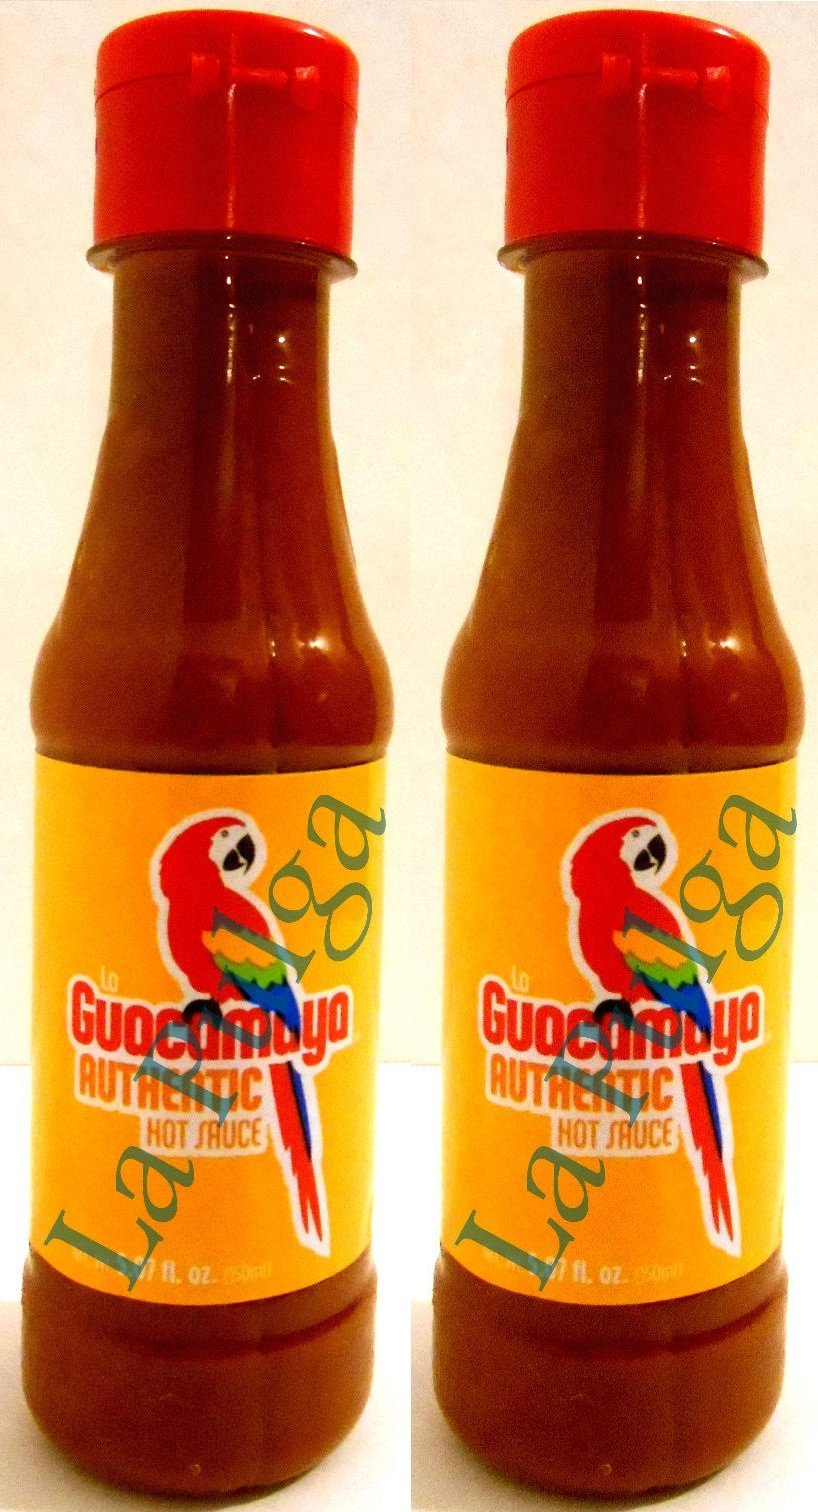 2 - La Guacamaya Authentic Hot Sauce Bottle Mexican Hot Sauce Salsa 5.07 oz Each